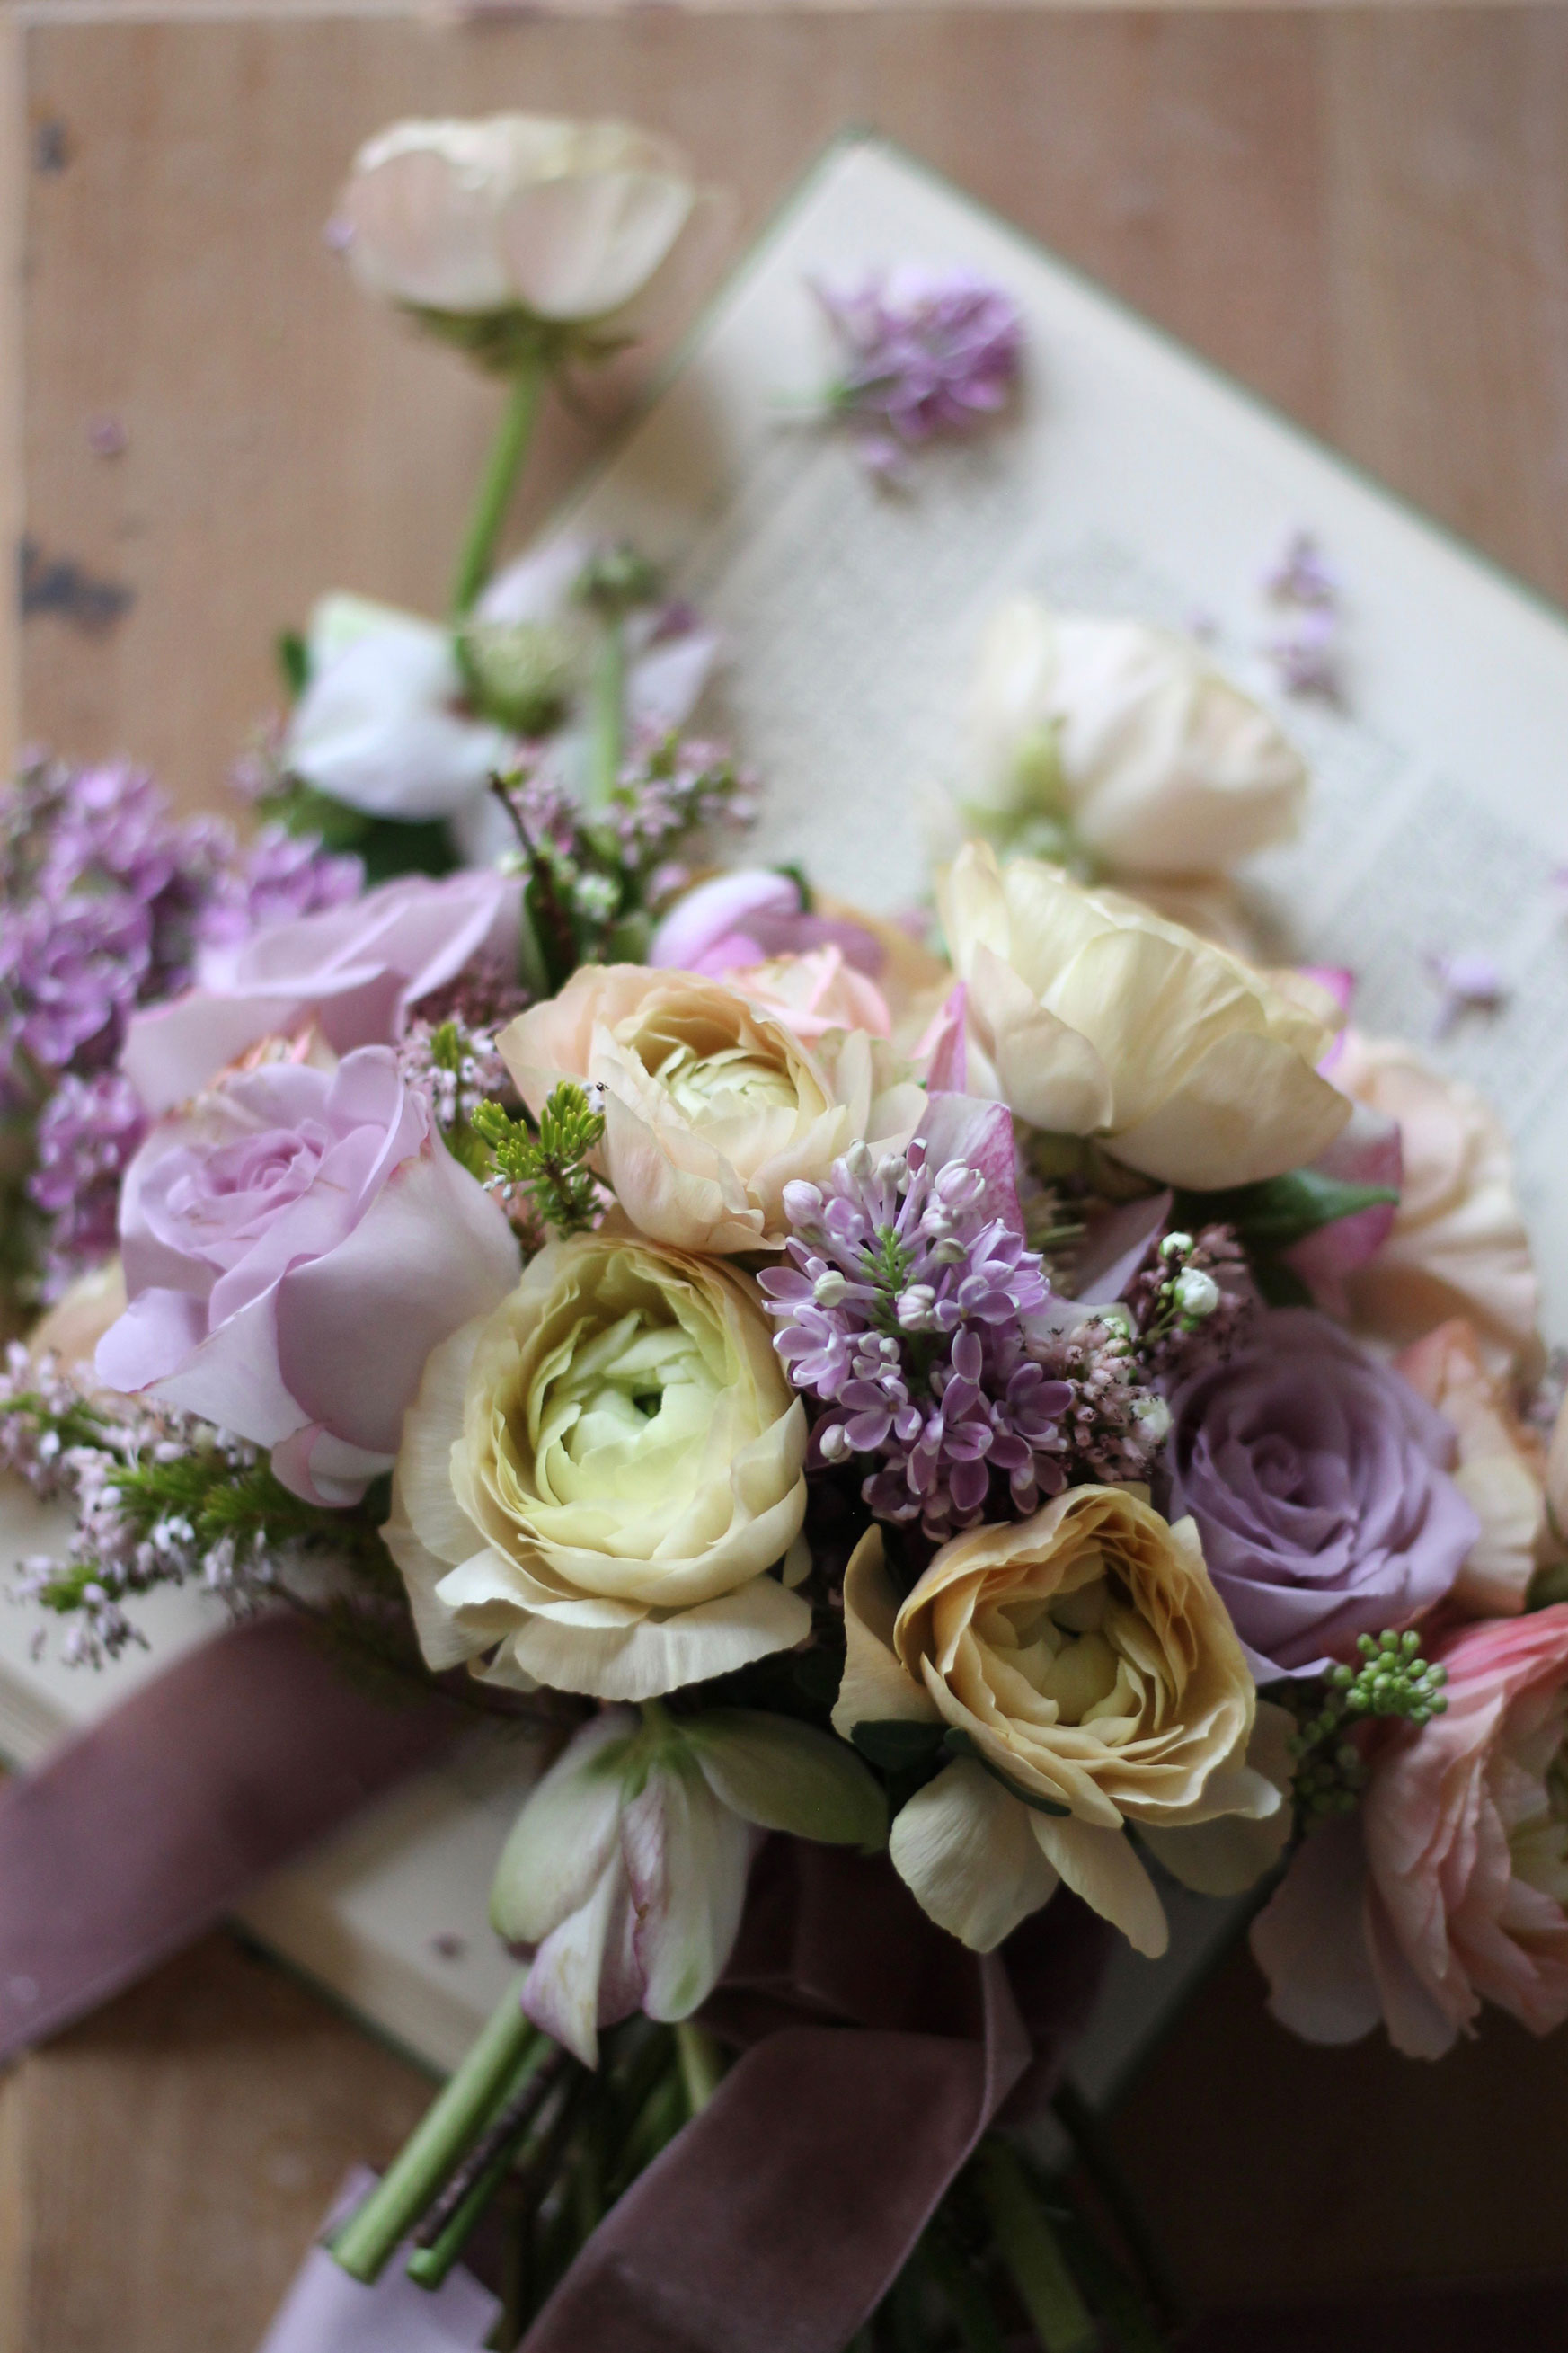 sarah-harper-floral-design-luxury-wedding-florist-flowers-oxfordshite-cotsworlds-gallery-IMG_8920